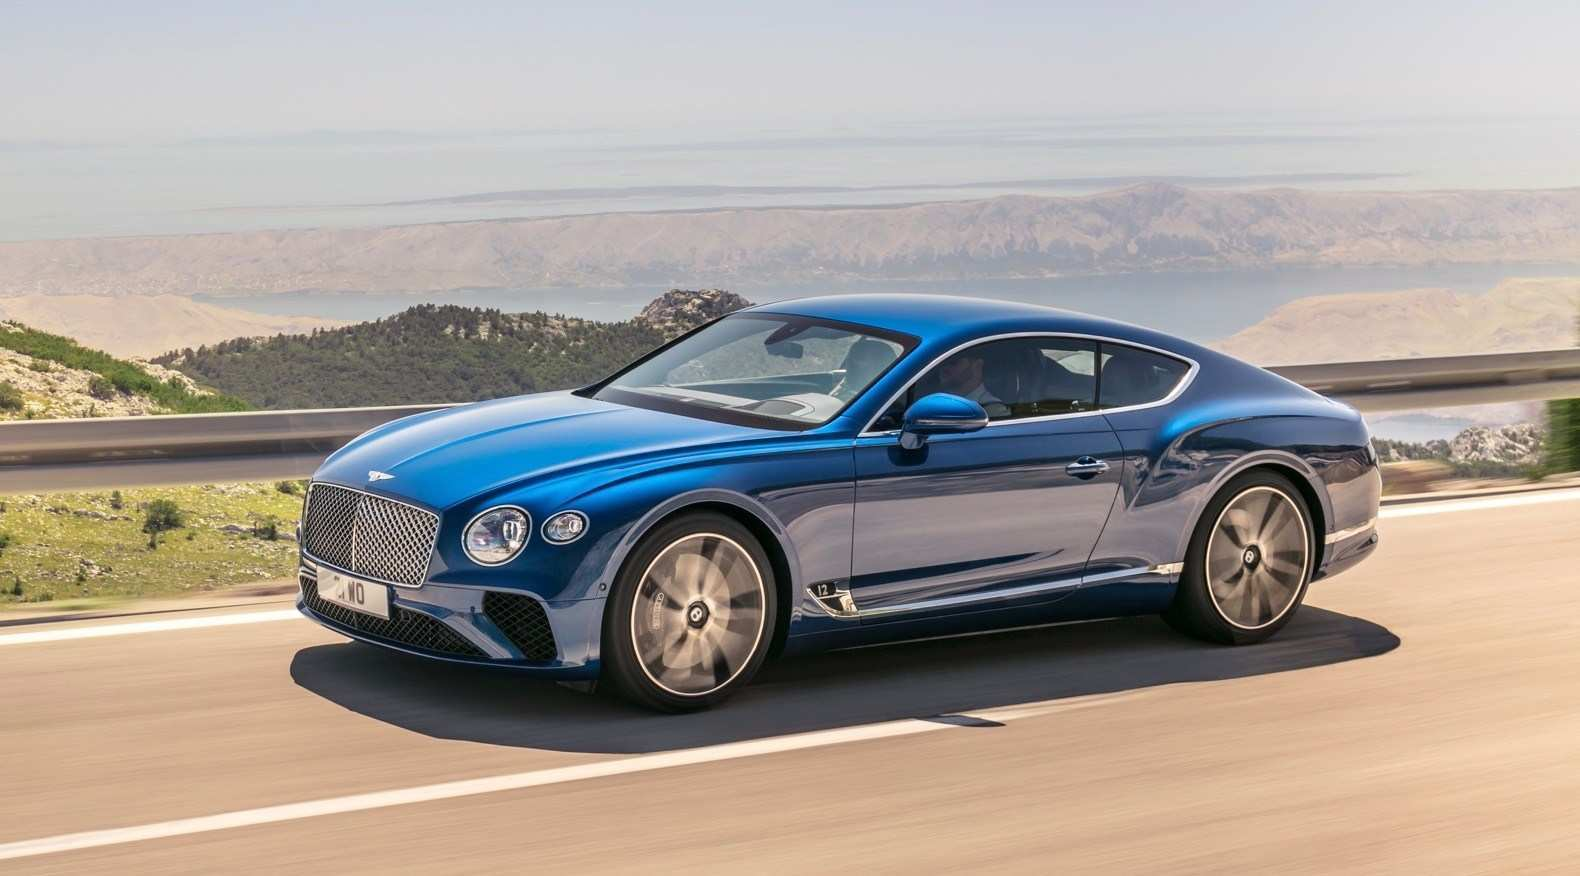 32 New 2019 Bentley Price Specs and Review with 2019 Bentley Price